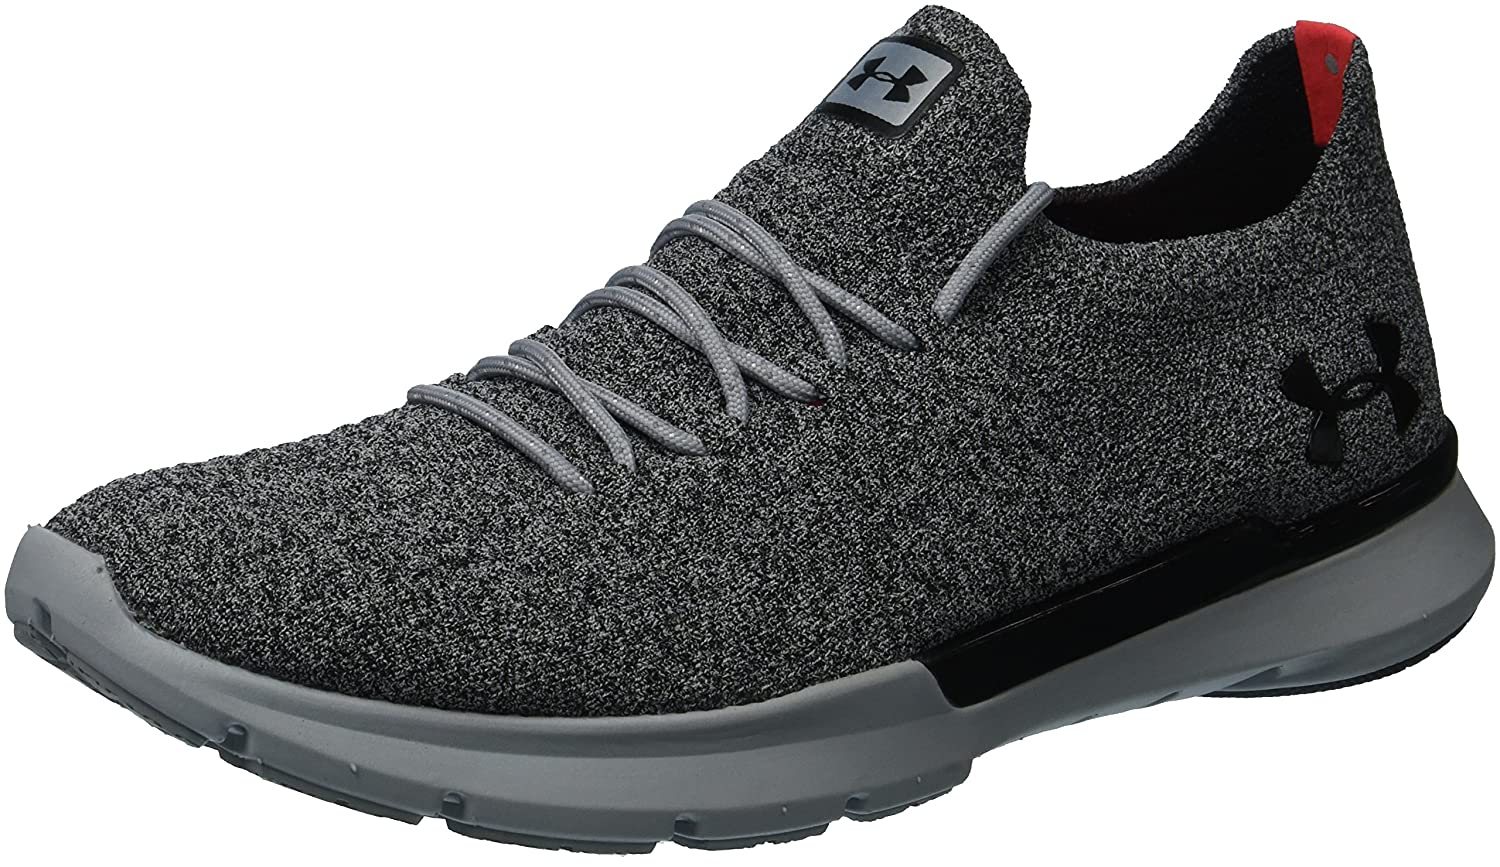 Under Armour Women's Slingwrap Phase Cross-Country Running Shoe B06XPNYJPZ 7.5 M US|Overcast Gray (100)/Overcast Gray